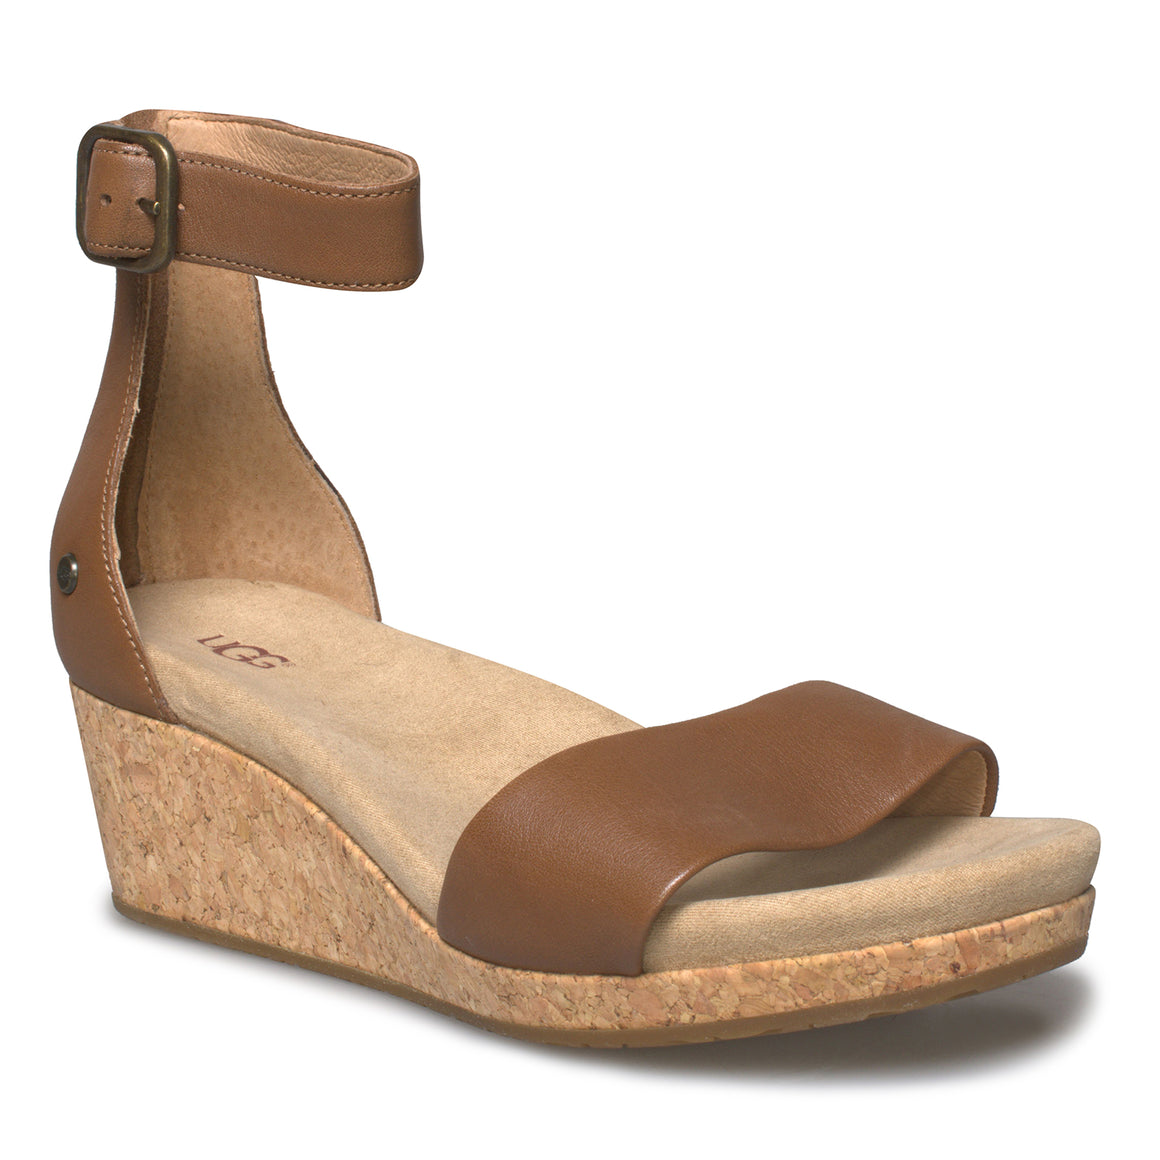 UGG Zoe II Chestnut Sandals - Women's